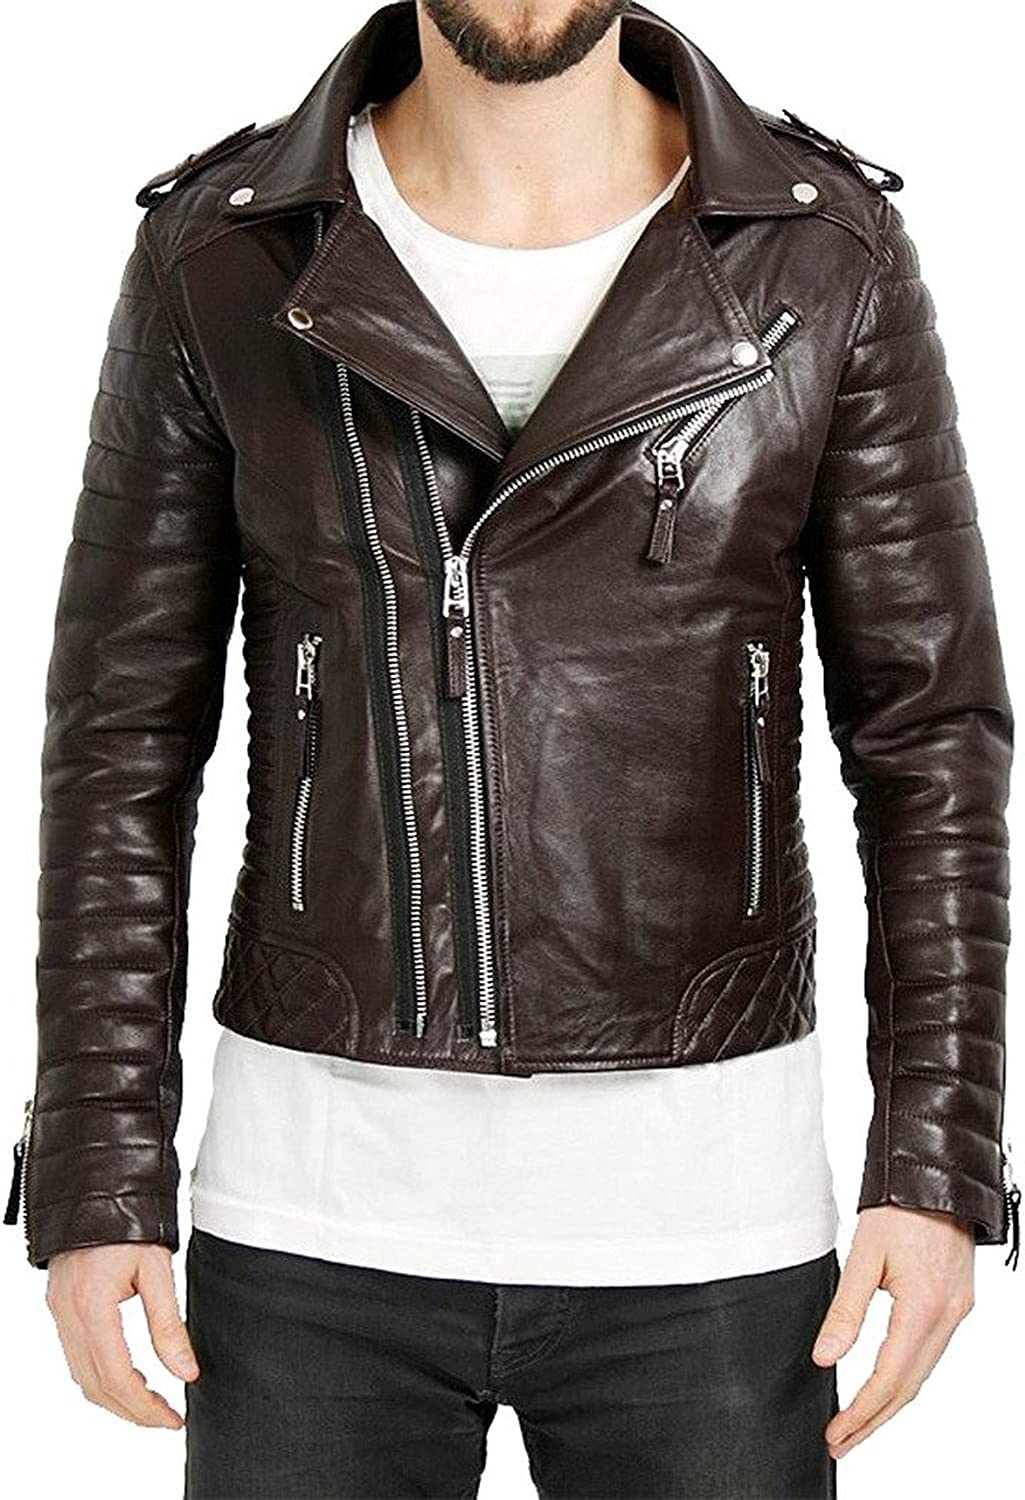 Kingdom Leather New Men Quilted Leather Jacket Soft Lambskin Biker Bomber X623